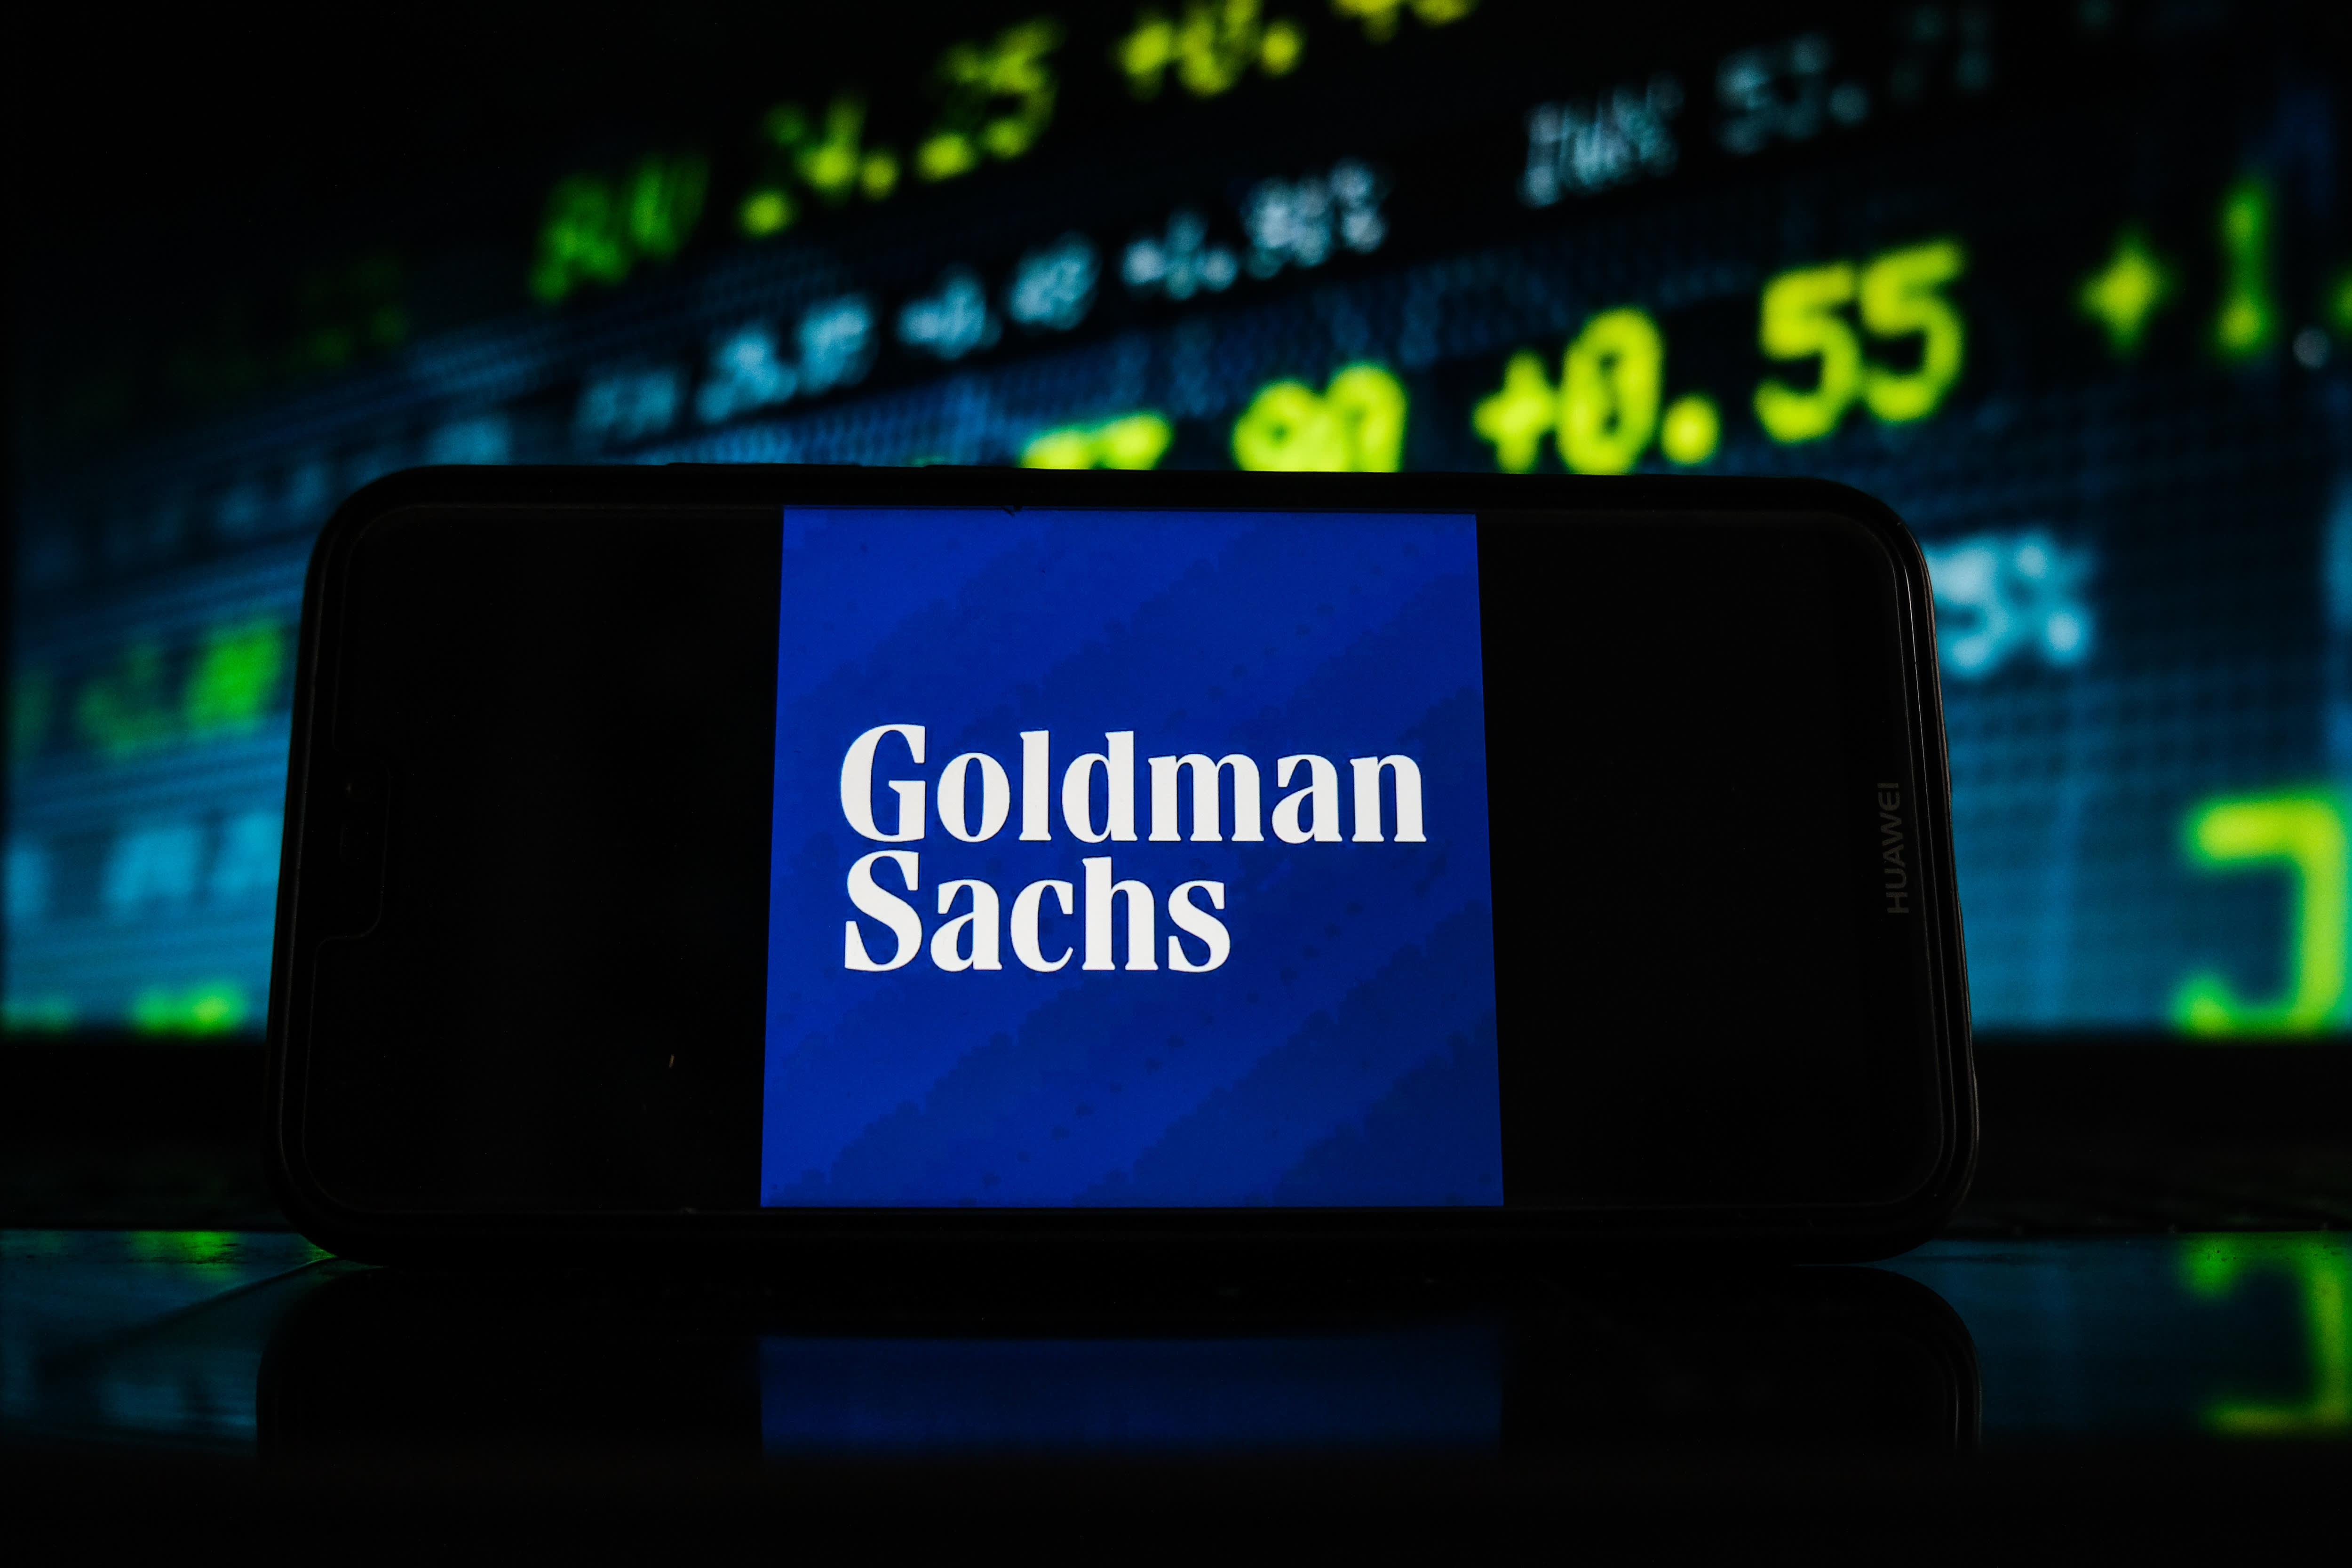 Goldman Sachs enlists American Express to take on cash management titans like Citigroup